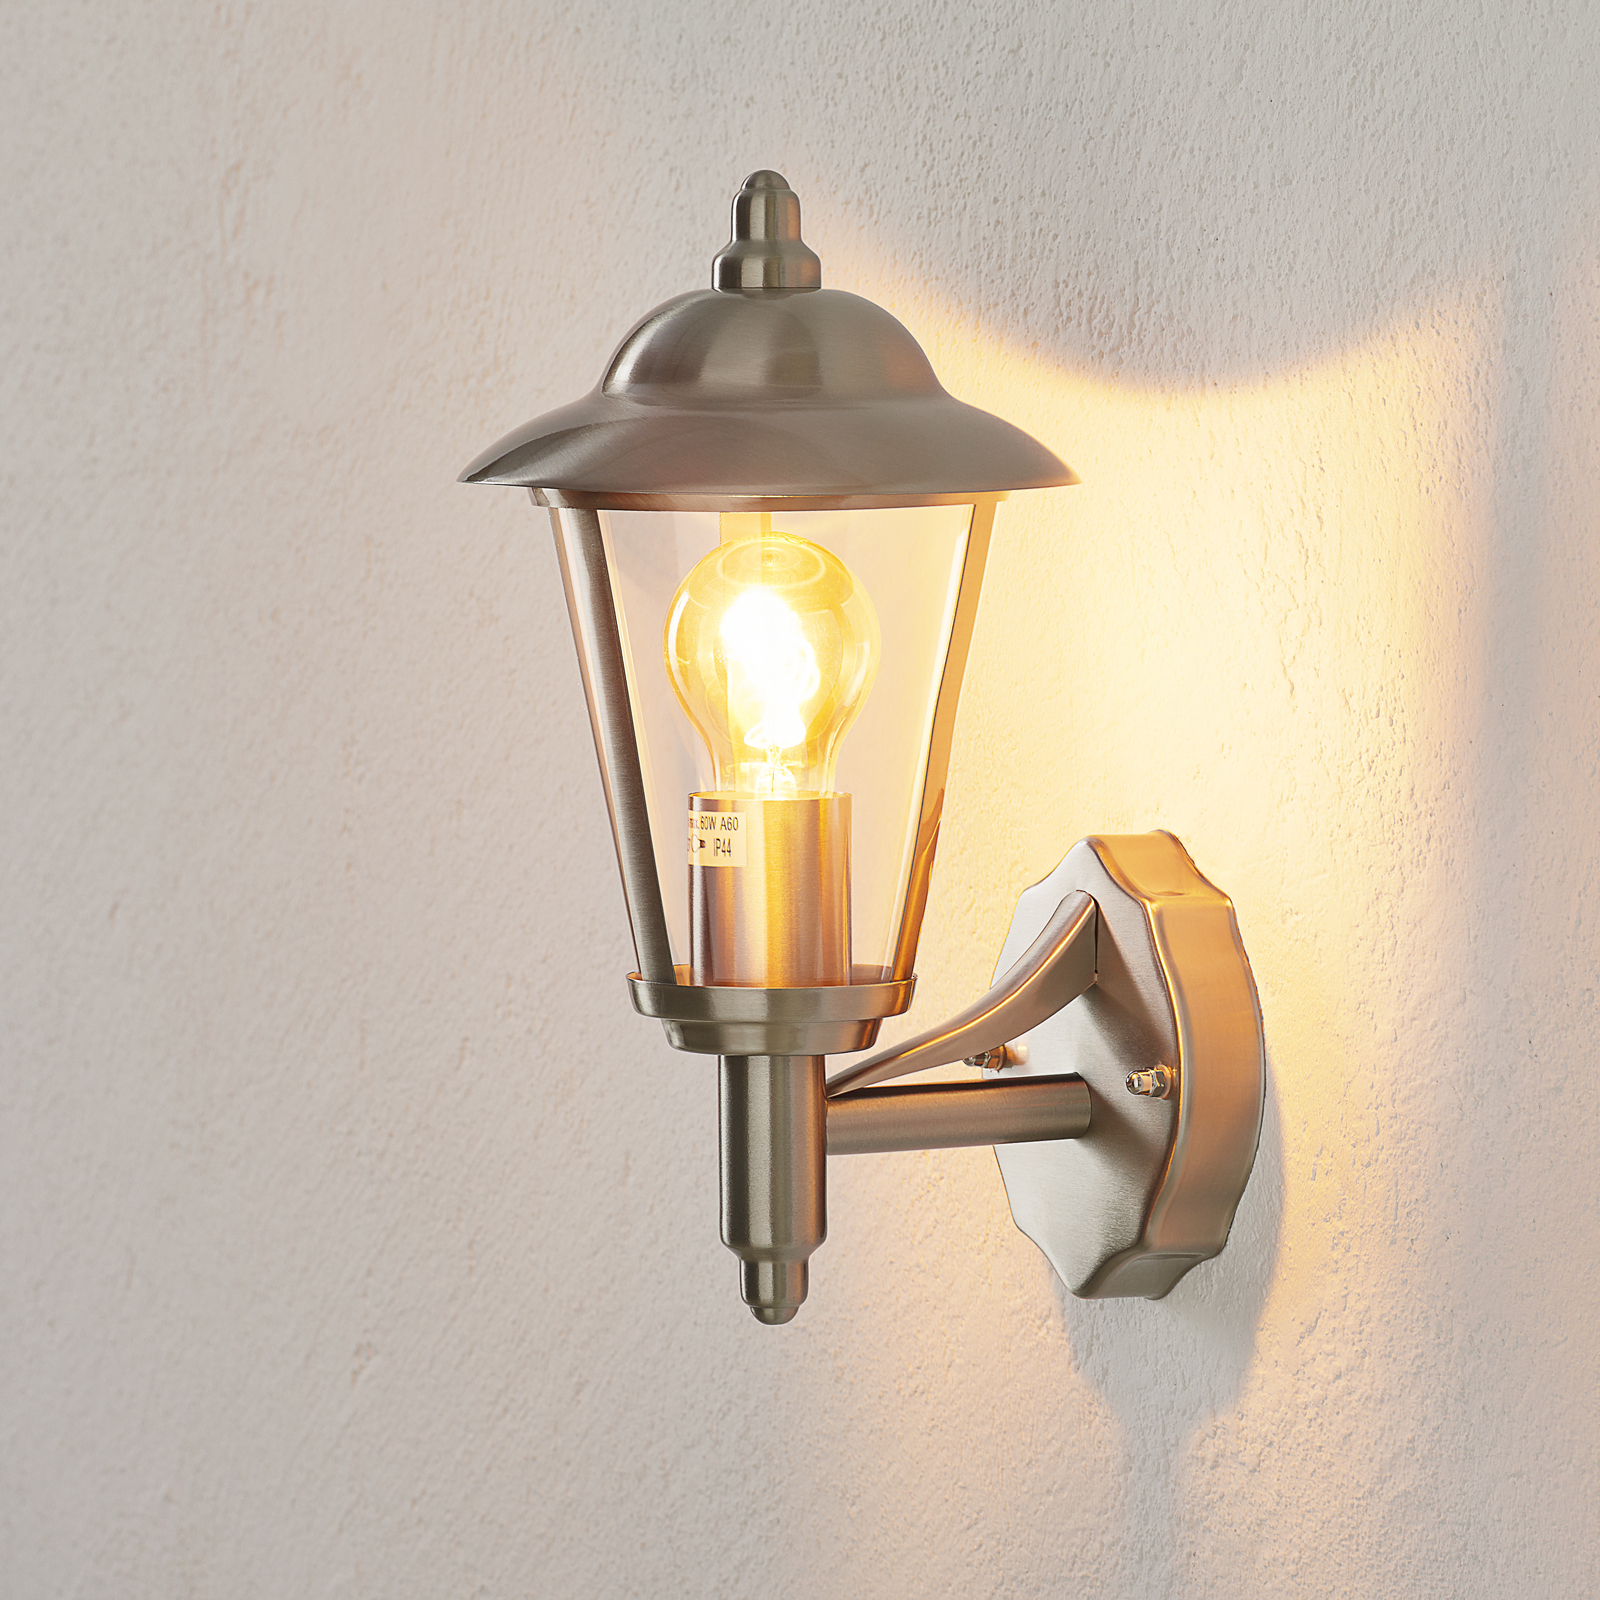 Attractive outdoor wall light Neil I_1507013_1